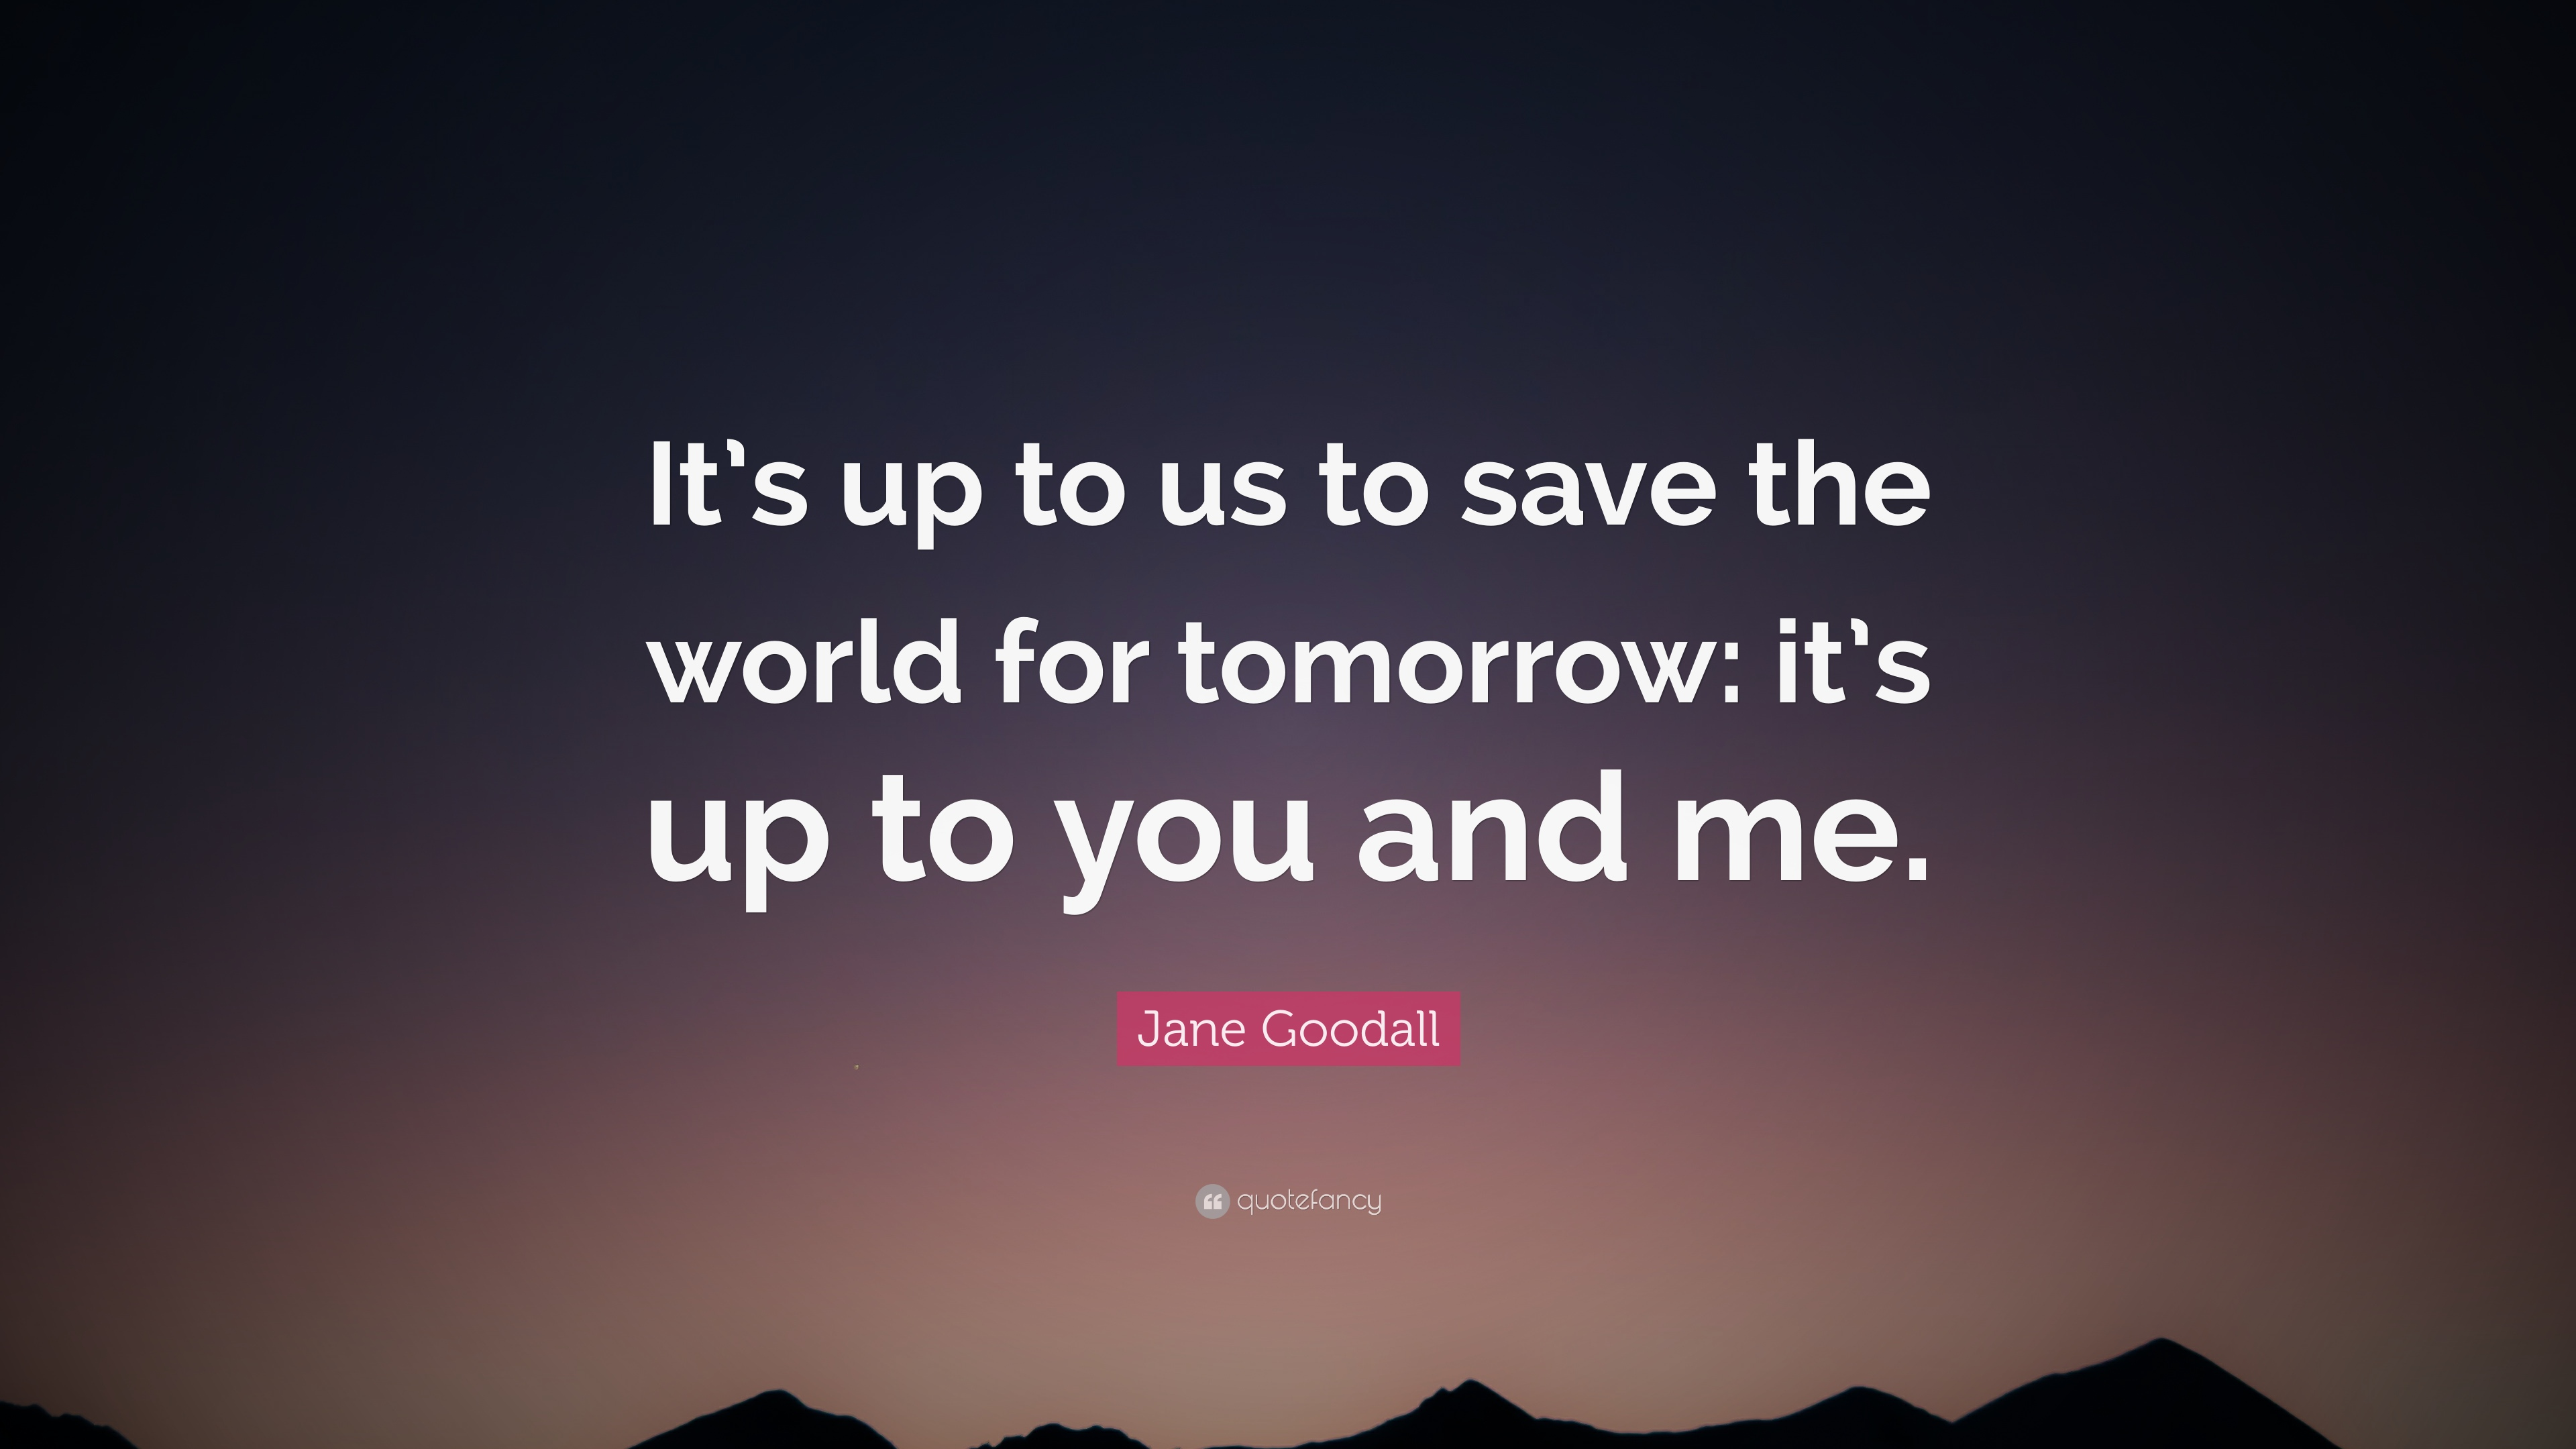 Save the world quotes quotesgram - Save The World Quotes Famous Save The World Quotes Popular Save The World Quotes